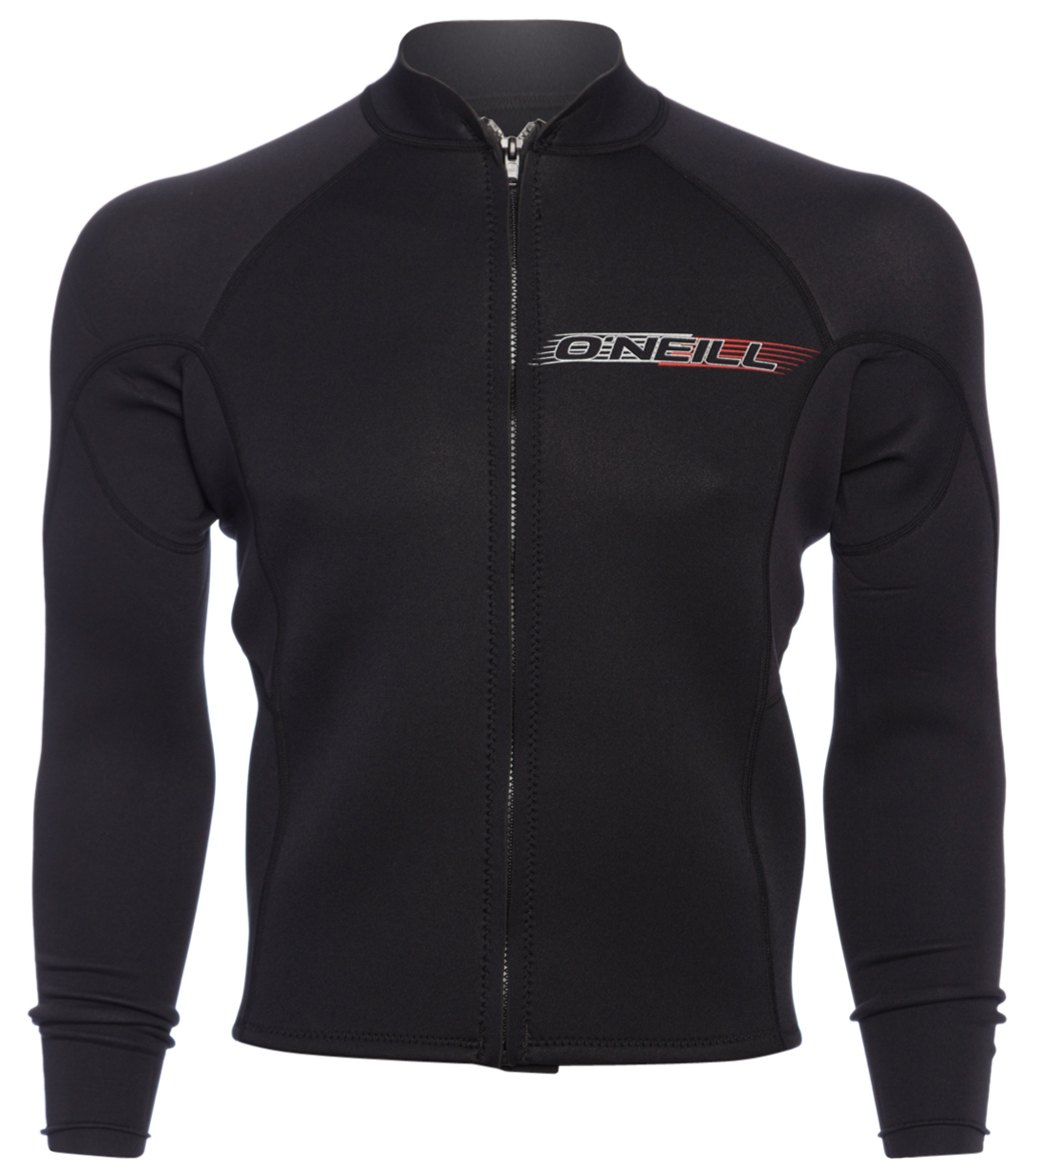 79fd5dd597b5 O'Neill Men's 2MM Superlite Front Zip Long Sleeve Wetsuit Jacket at  SwimOutlet.com - Free Shipping